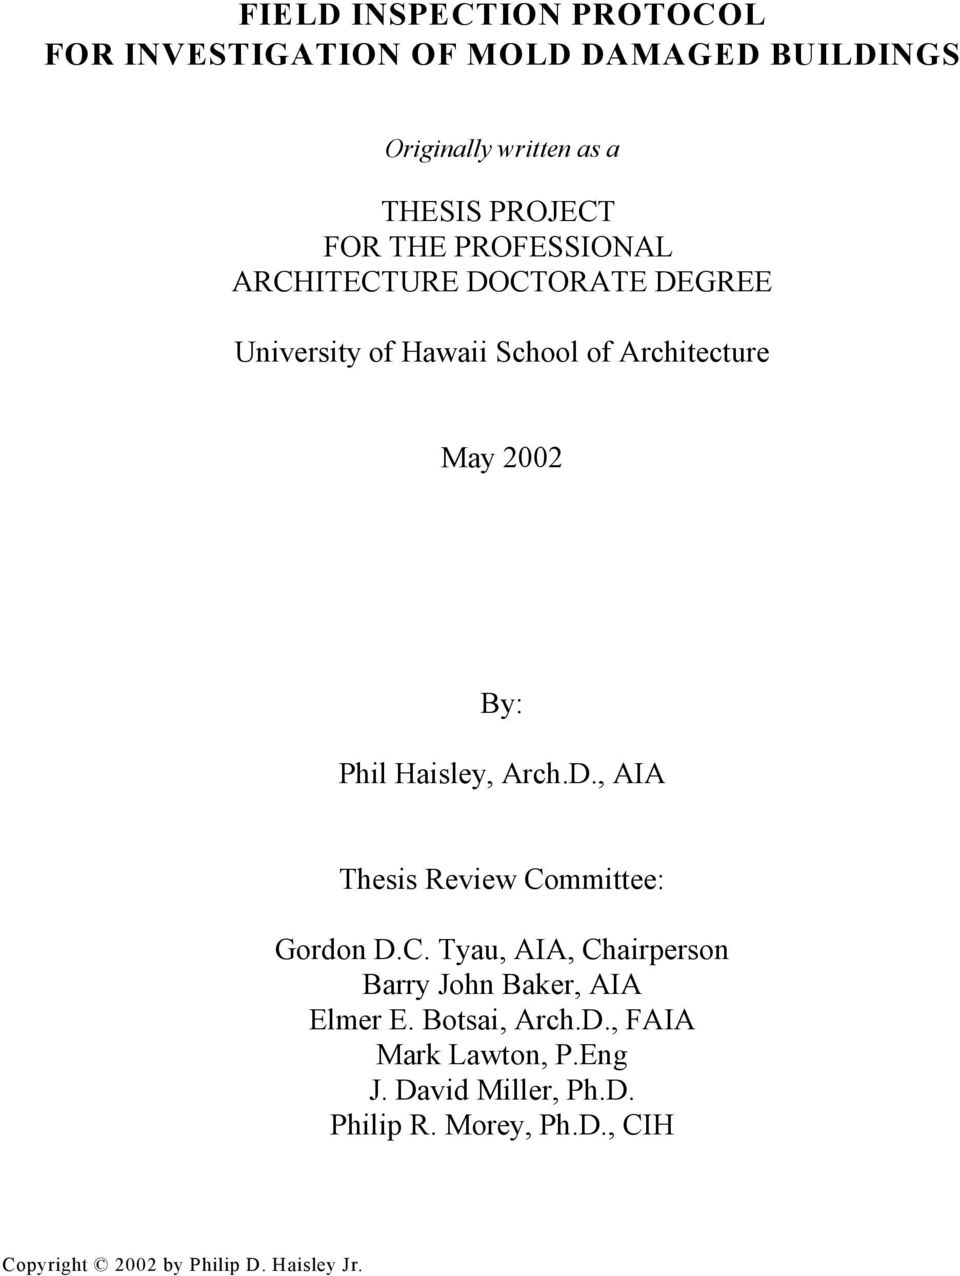 Arch.D., AIA Thesis Review Committee: Gordon D.C. Tyau, AIA, Chairperson Barry John Baker, AIA Elmer E. Botsai, Arch.